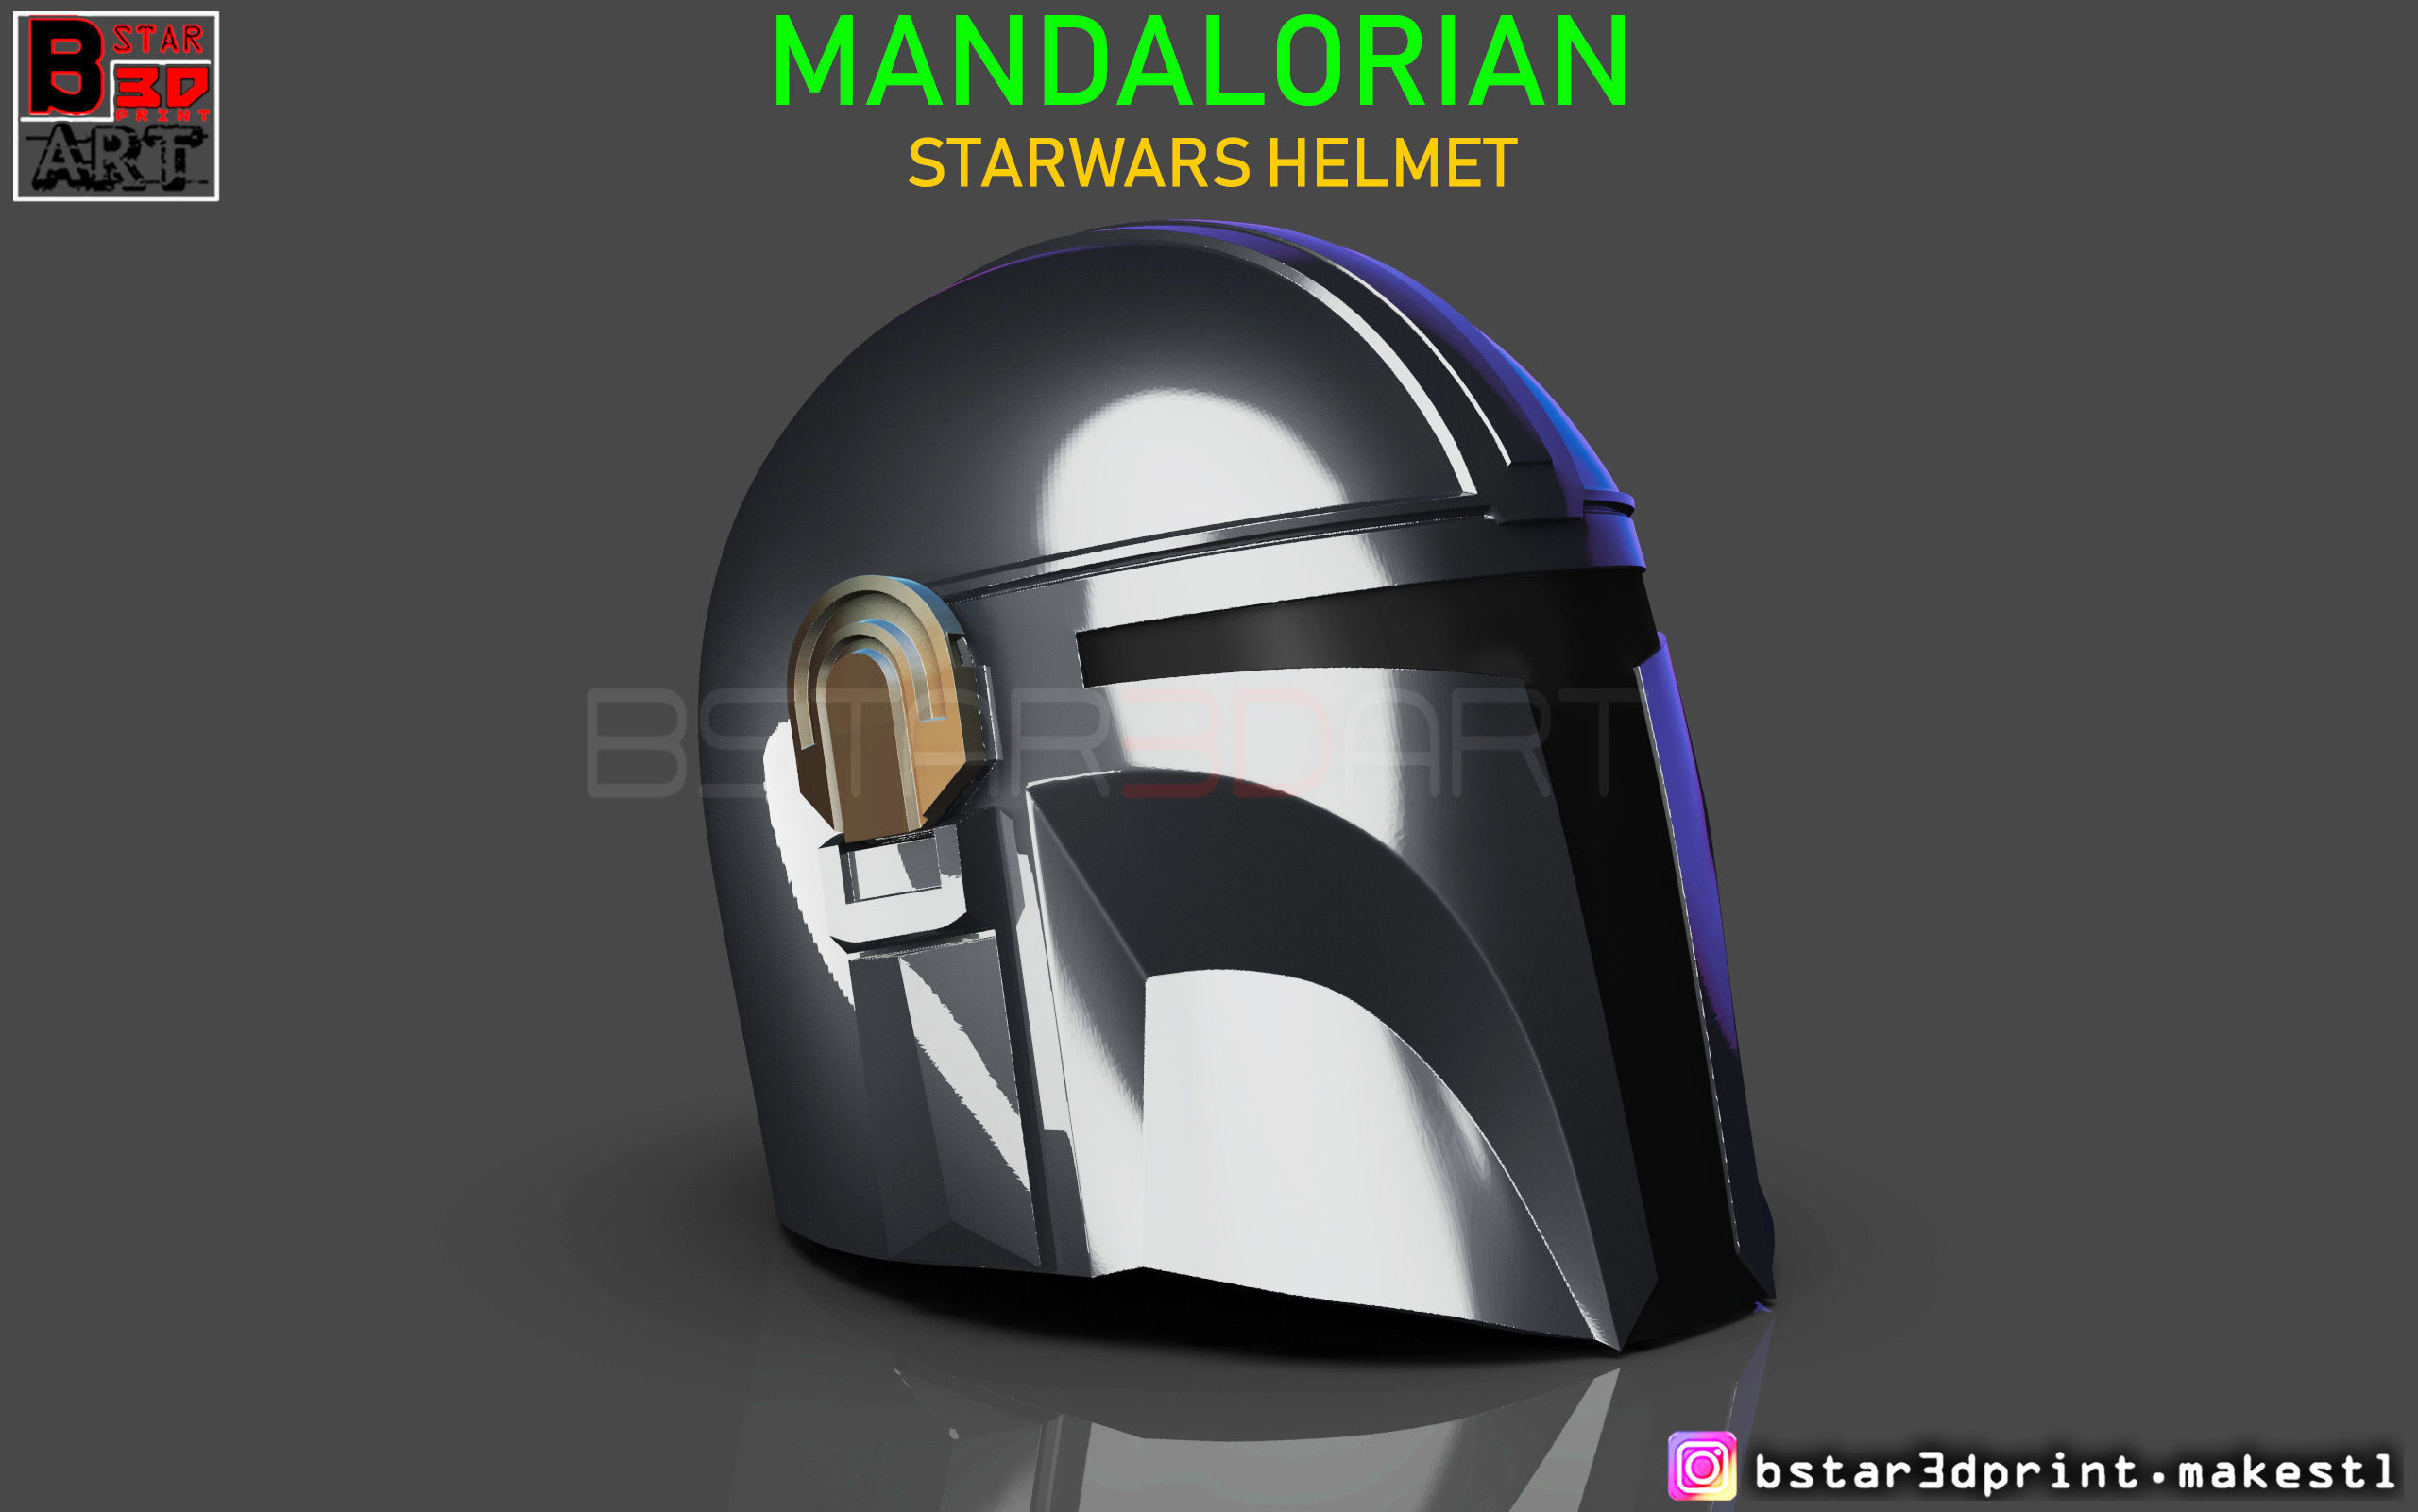 MANDALORIAN HELMET - STAR WARS movie 2019